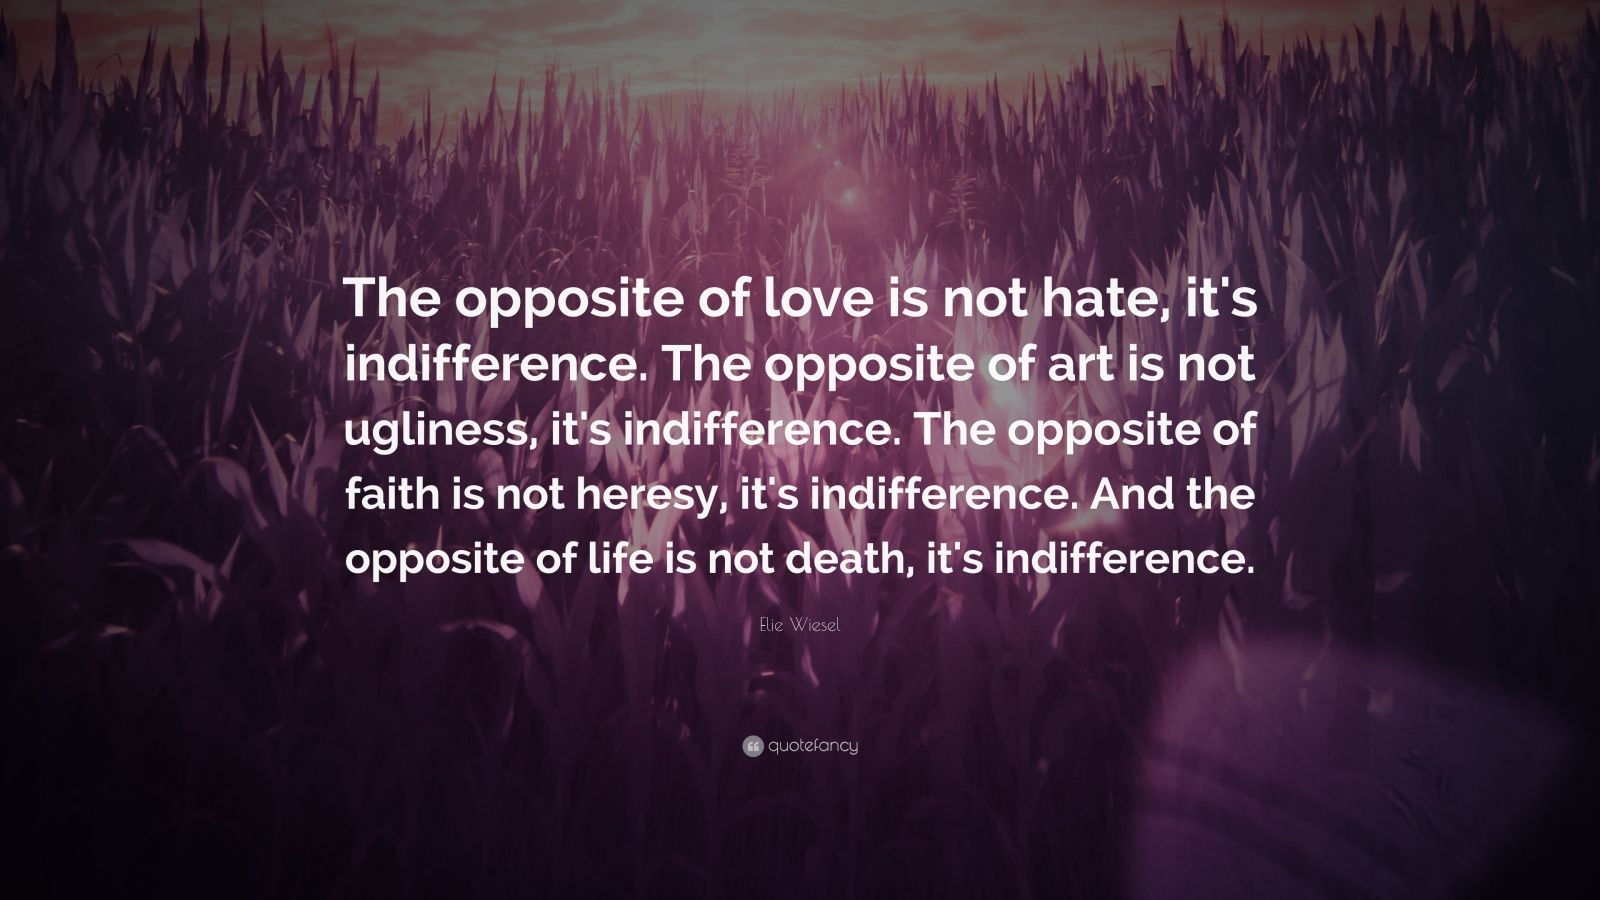 Theodore Roosevelt Quotes Wallpaper Elie Wiesel Quote The Opposite Of Love Is Not Hate It S